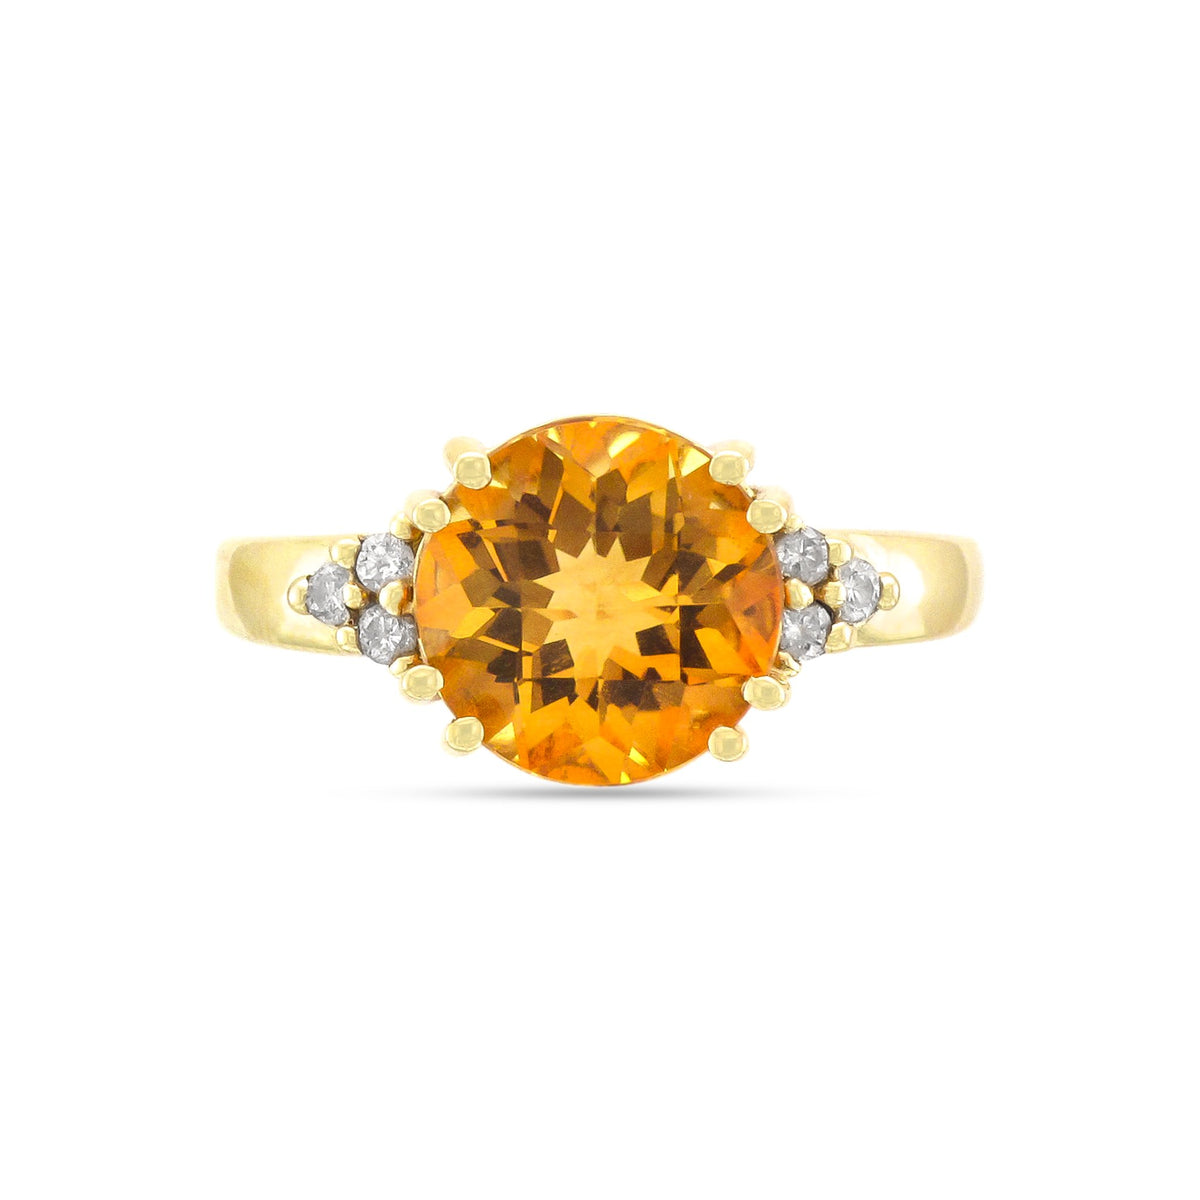 Vintage 14ct Yellow Gold Citrine & Diamond Ring